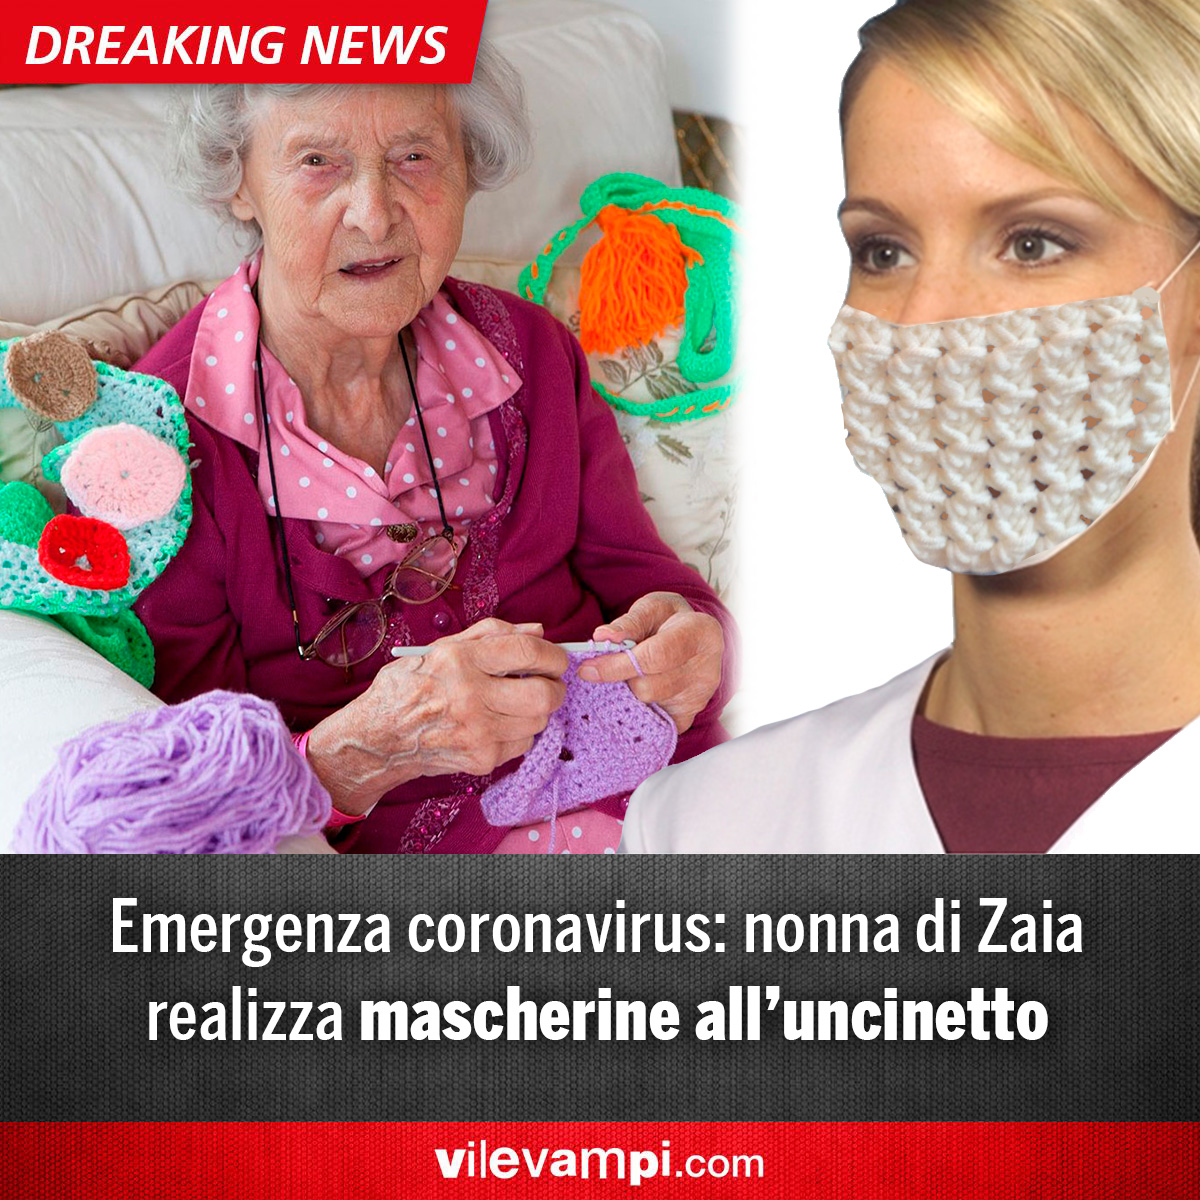 2020_Drek_news_mascherine-uncinetto